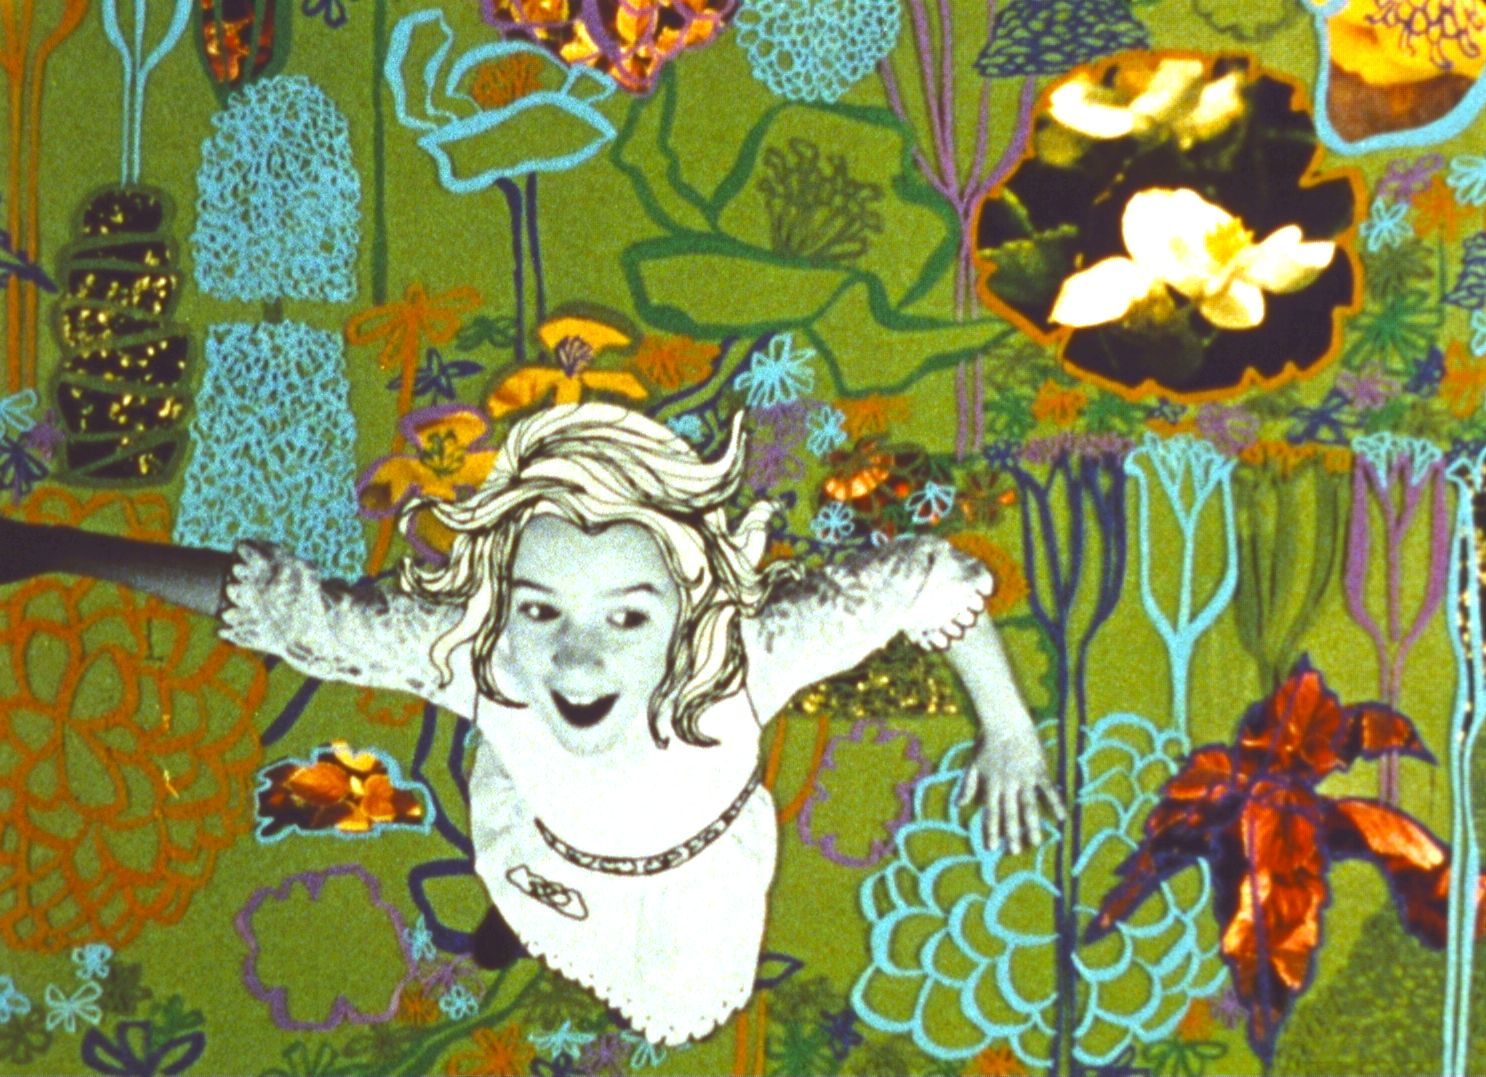 drugs in alice in wonderland essay Alice's adventures in wonderland paper in victorian england the drug opium was commonly used this drug did not have the connotation that drugs have today studies show that five out of every six families used opium regularly (connell.